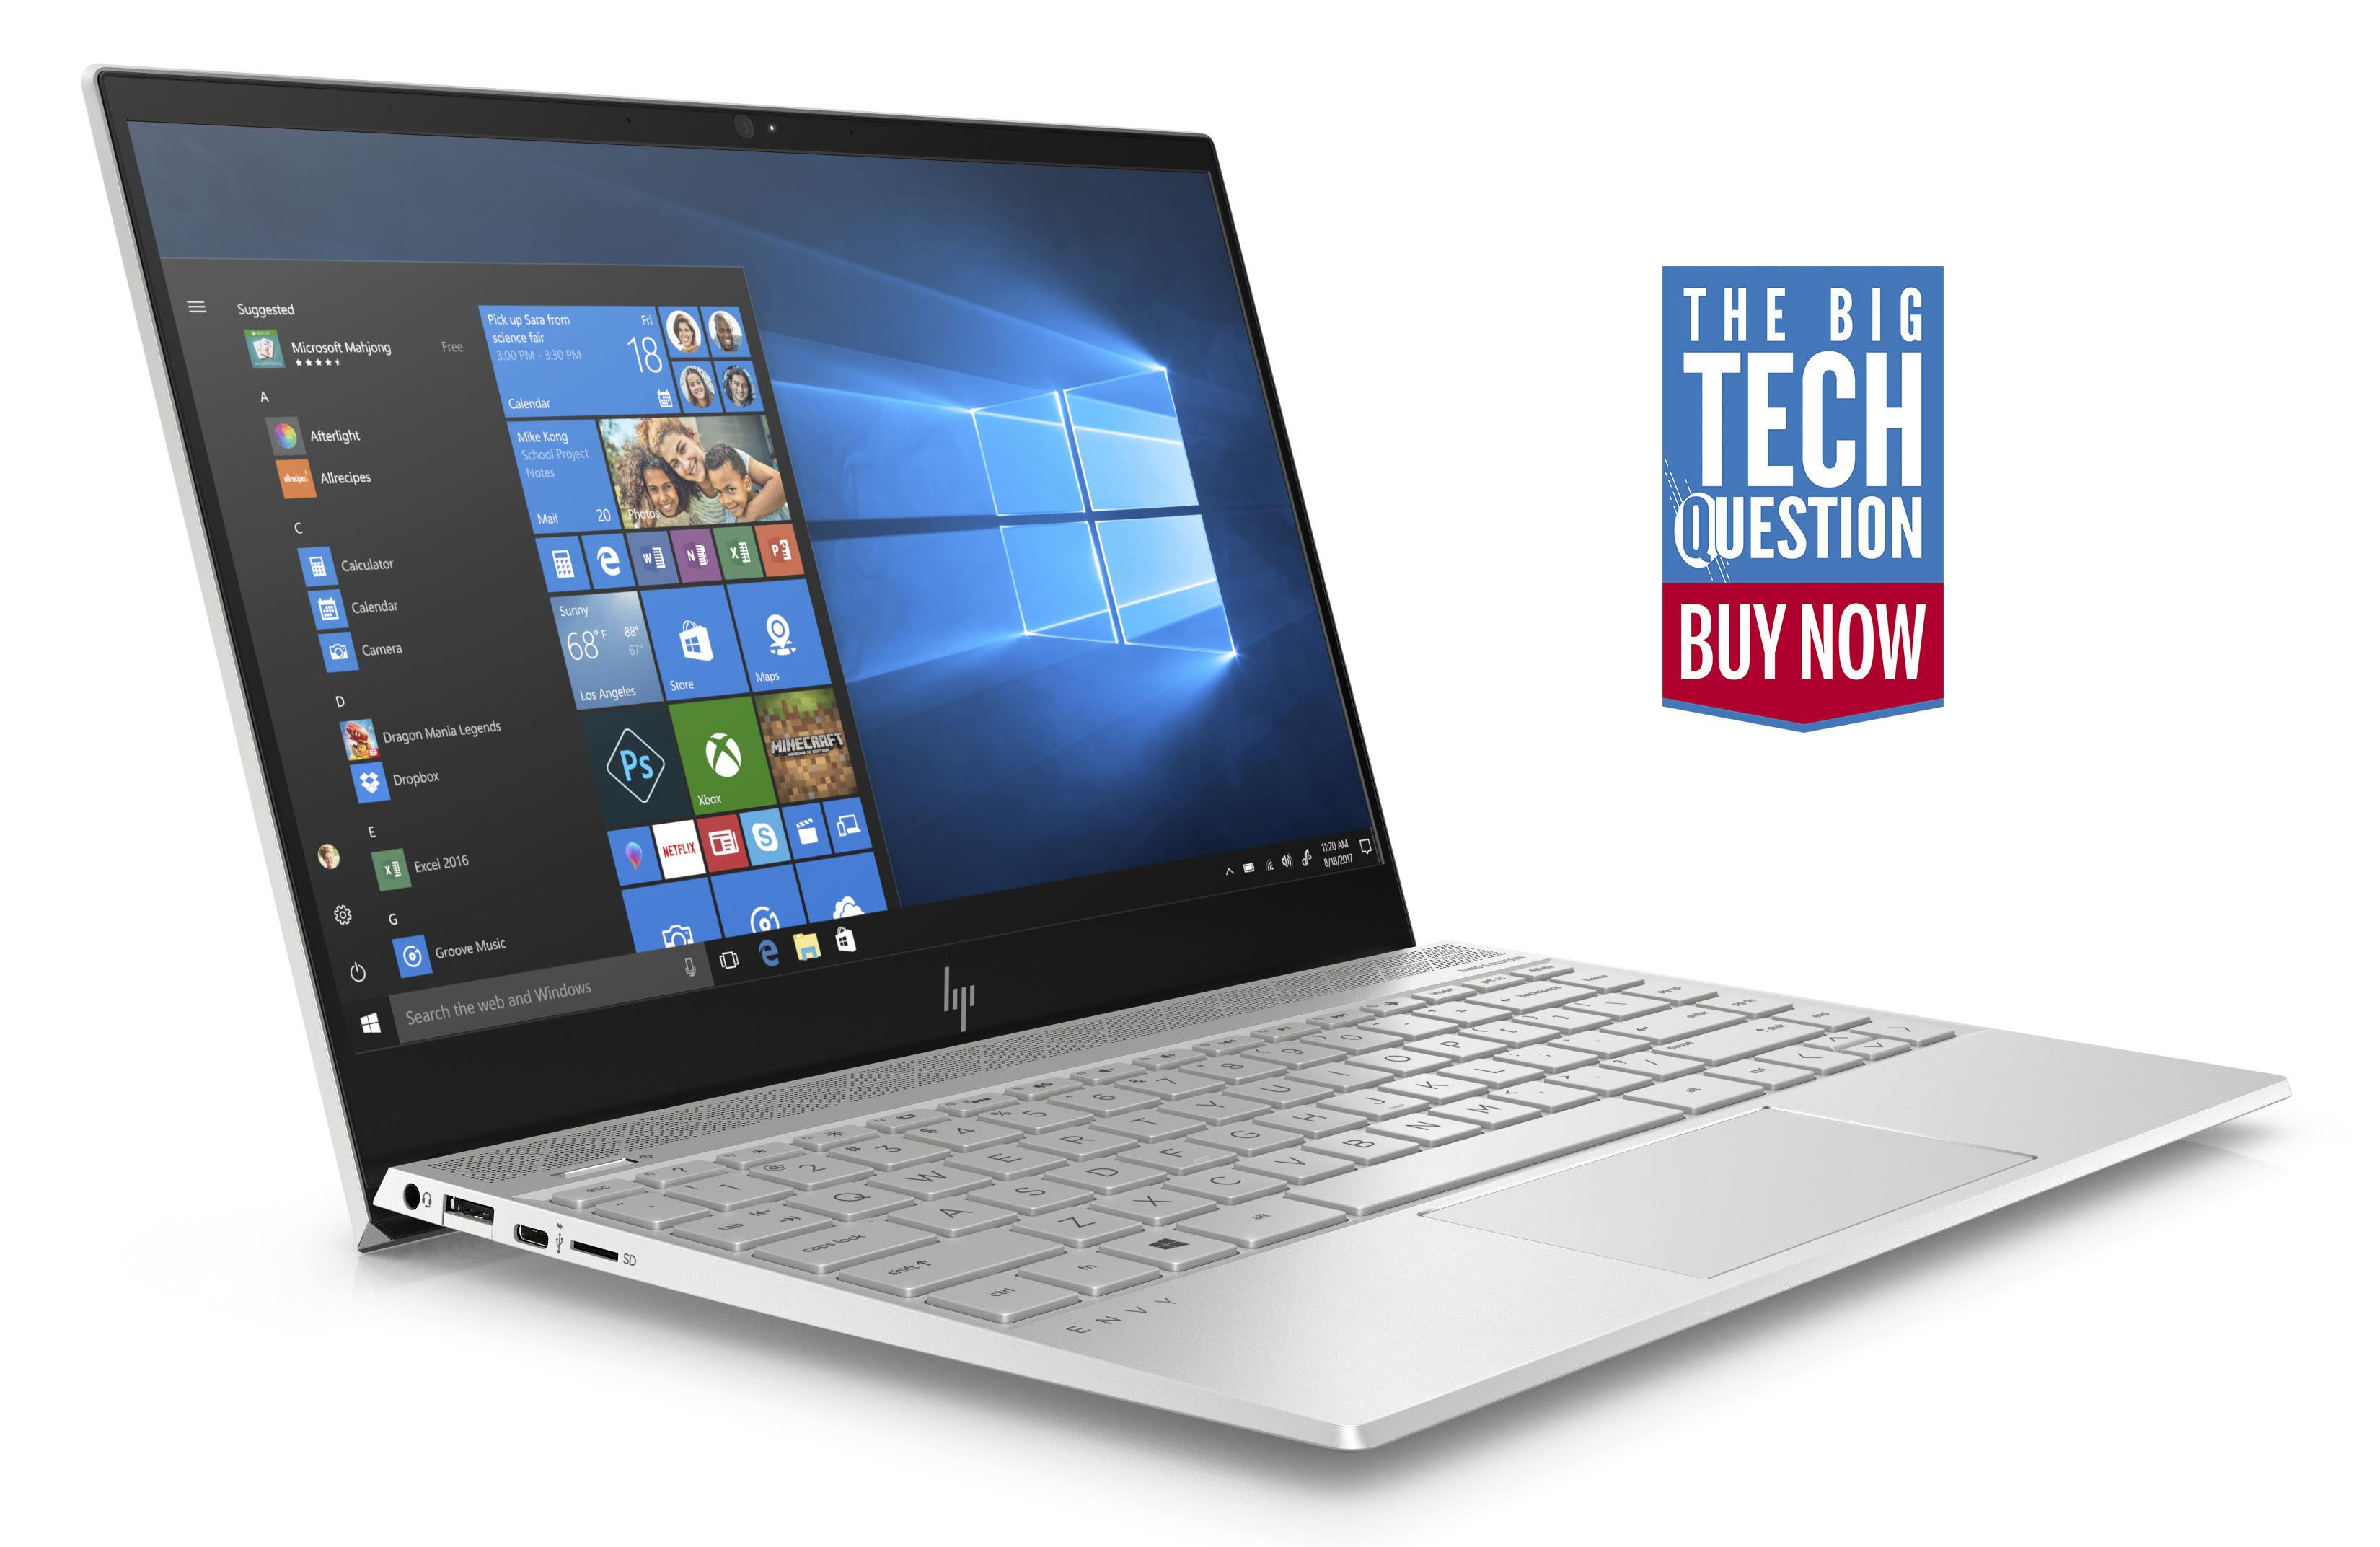 HP Envy 13 review: the best looking sub-£1,000 laptop there